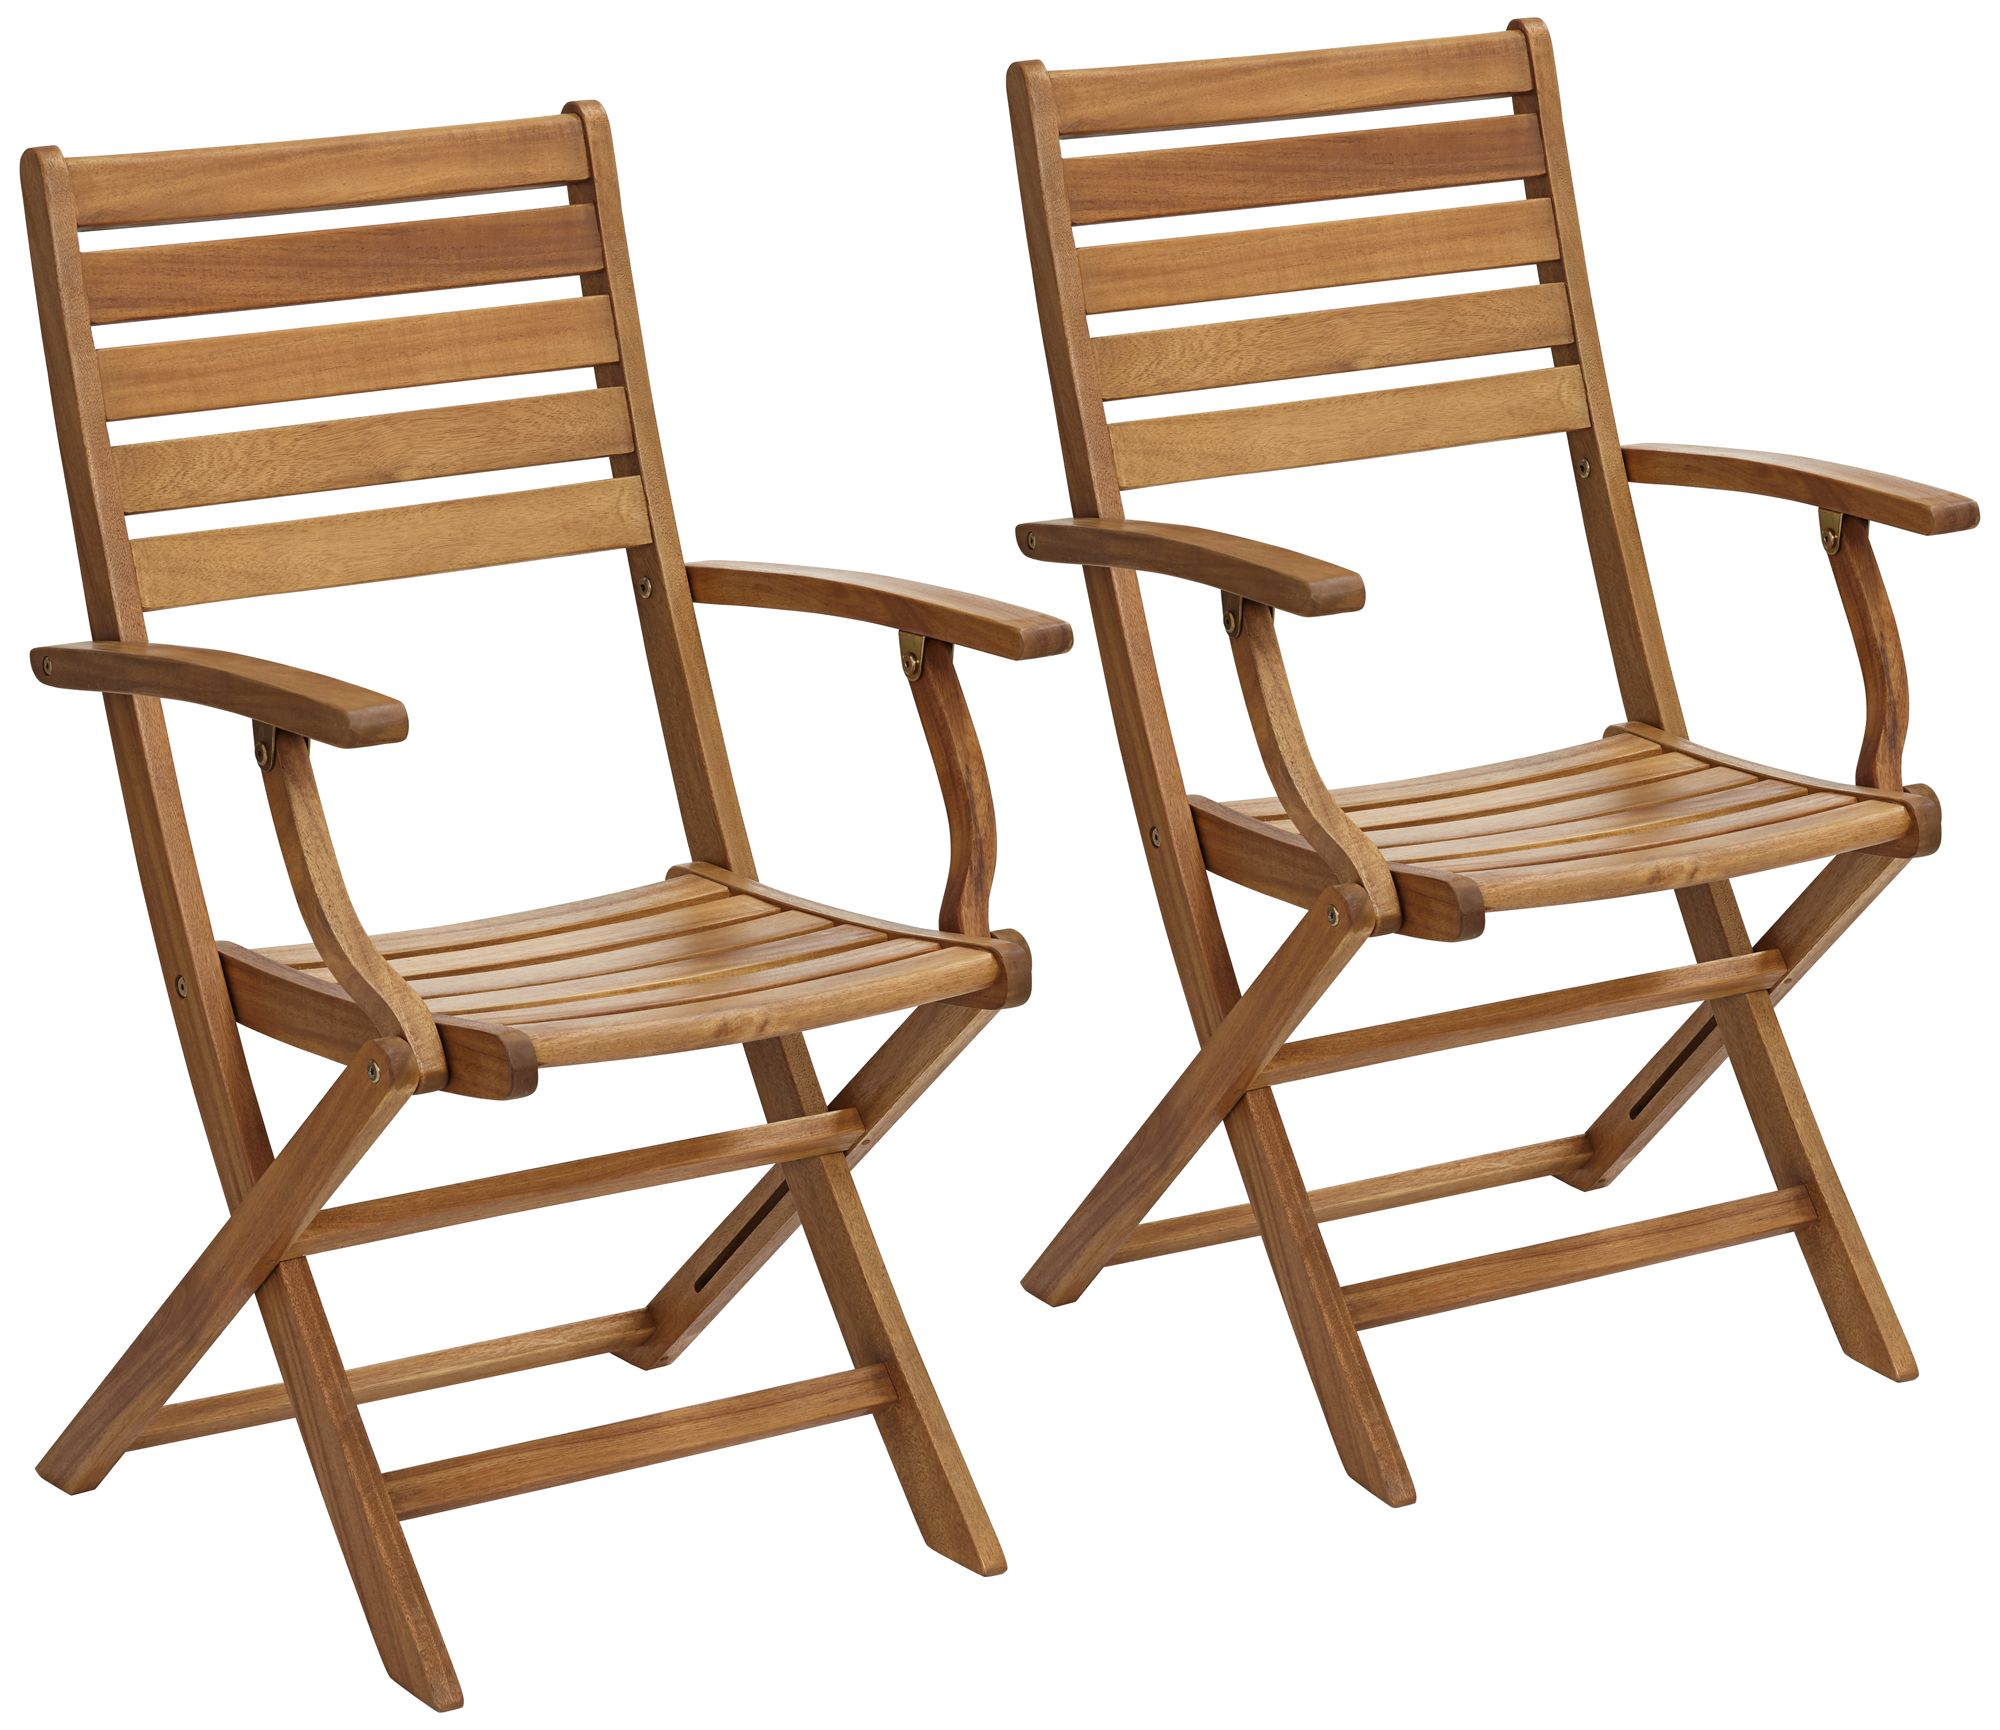 high quality outdoor folding chairs sports furniture patio sets luxury looks lamps plus capri natural wood dining armchairs set of 2